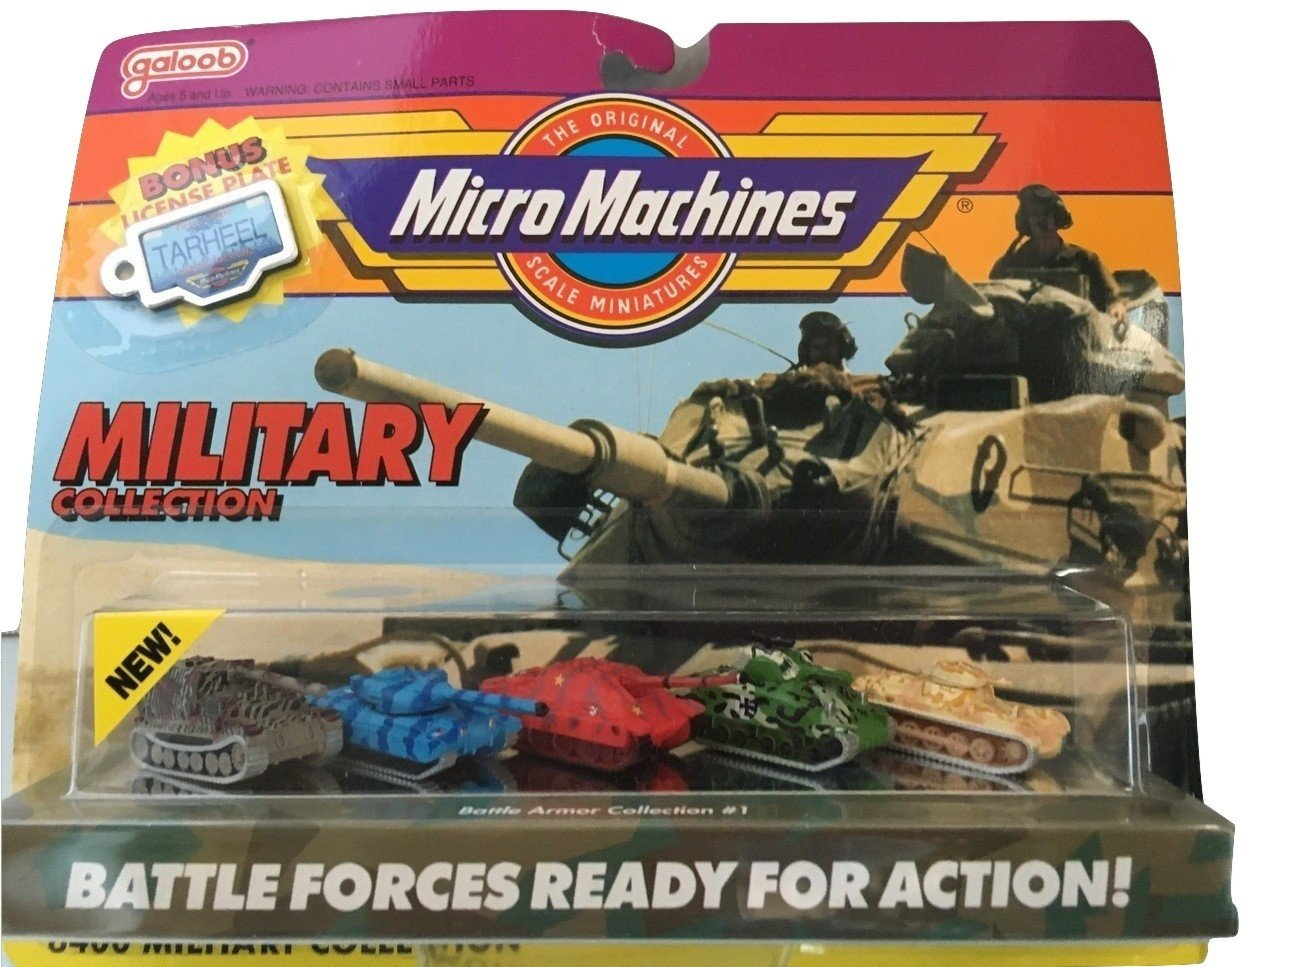 Buy Micro Machines Tank #1 Military Collection in Cheap